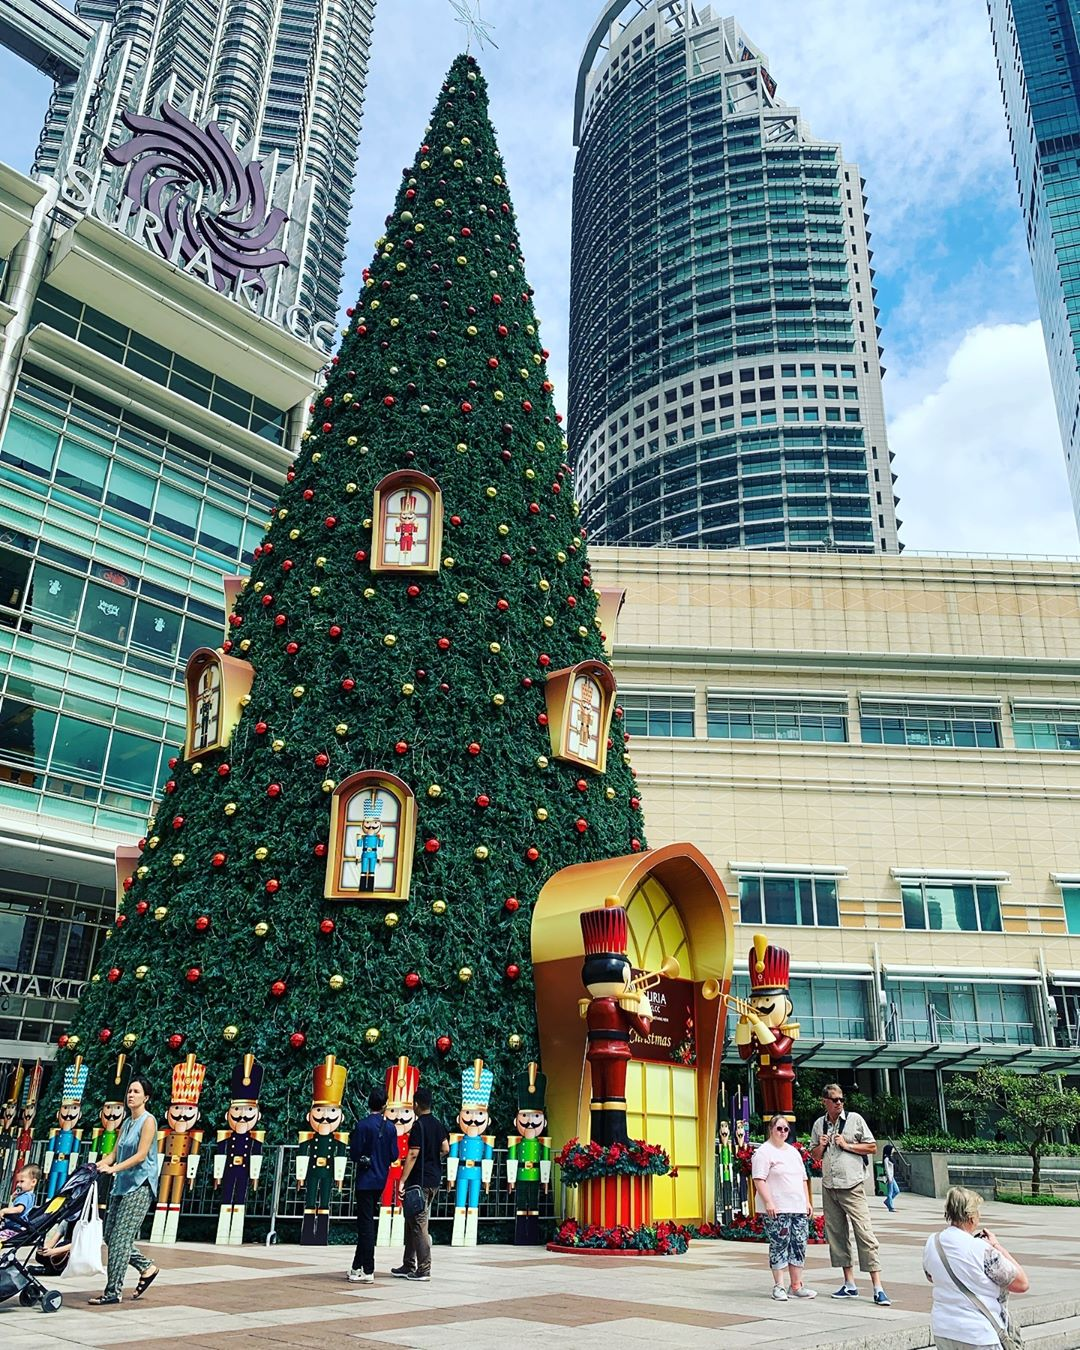 Christmas Decorations In Shopping Malls: [PHOTOS] 25 Malls In Malaysia With The Most Impressive